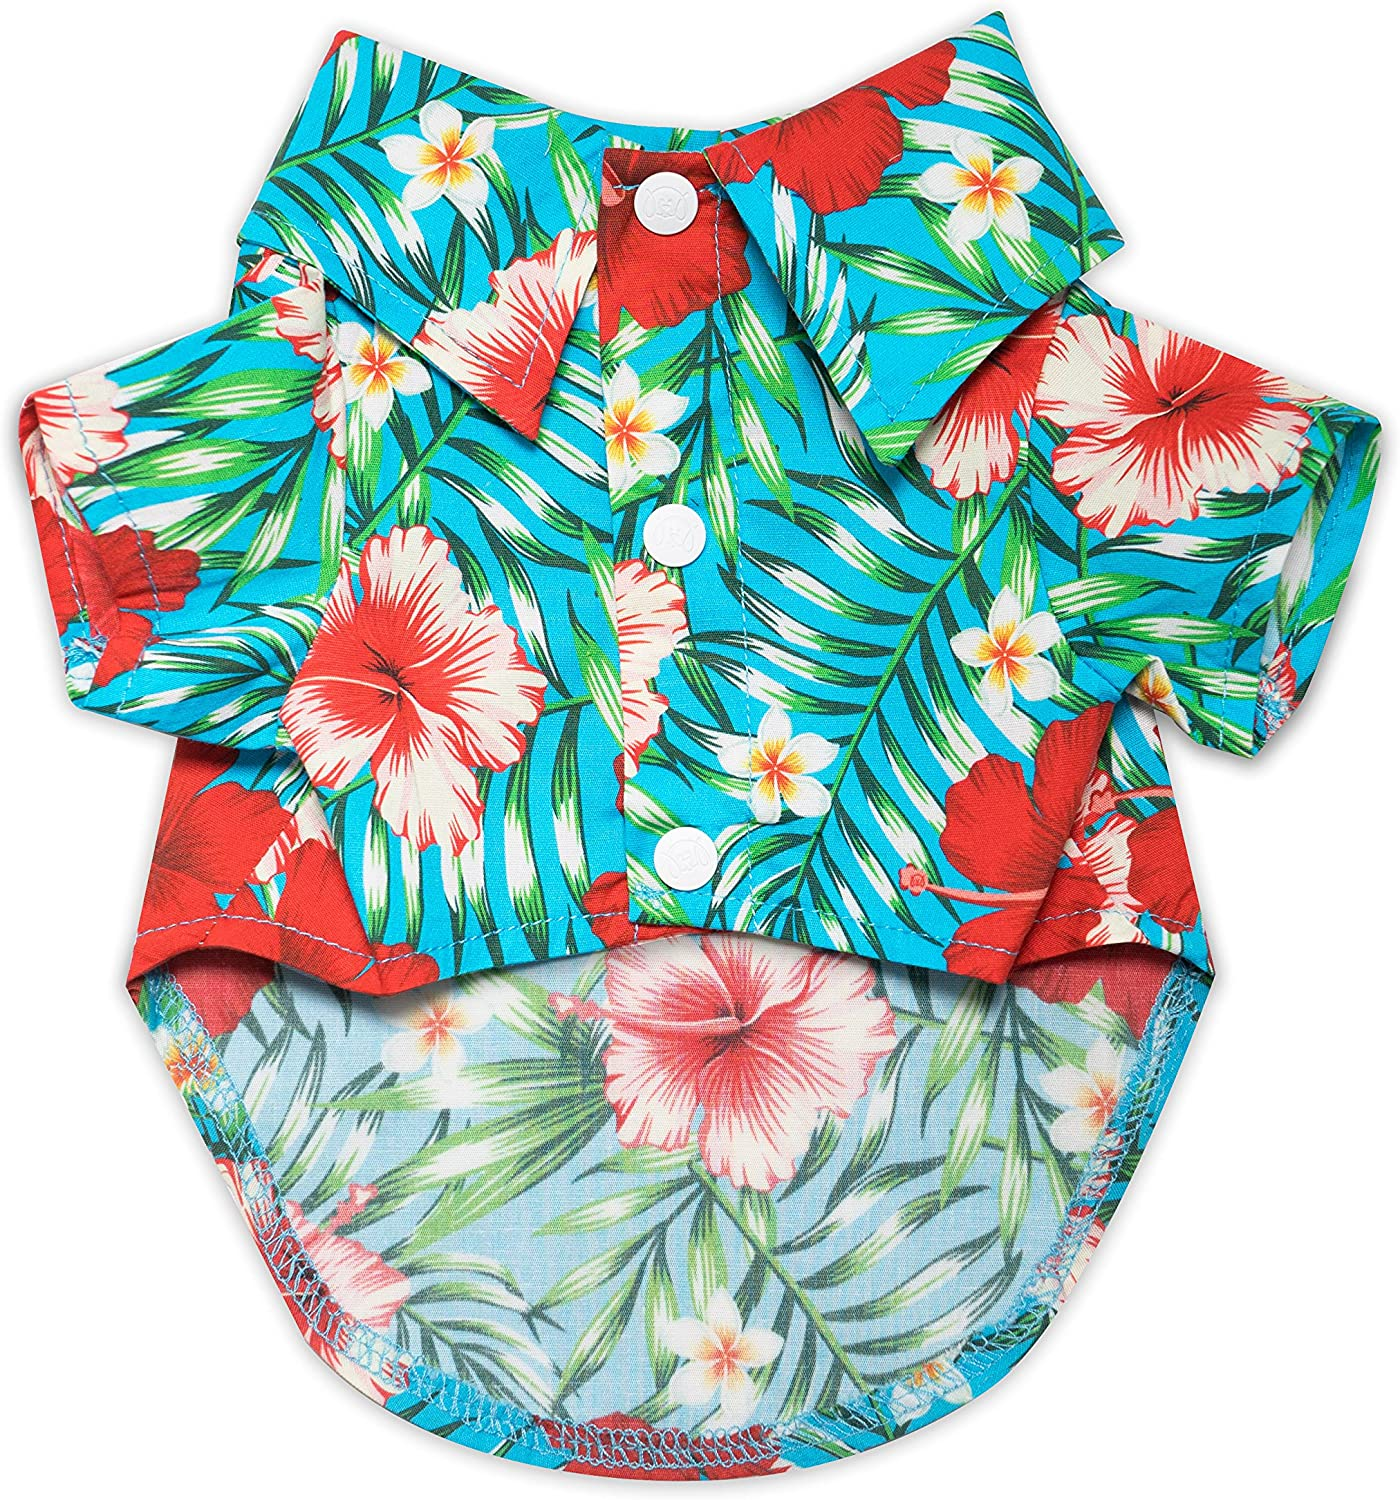 United Pups Hawaiian Shirt for Dogs Small to Medium Pets Cats Design for Summer Luau Style Beach Camp Vacation Floral Puppy T-Shirt